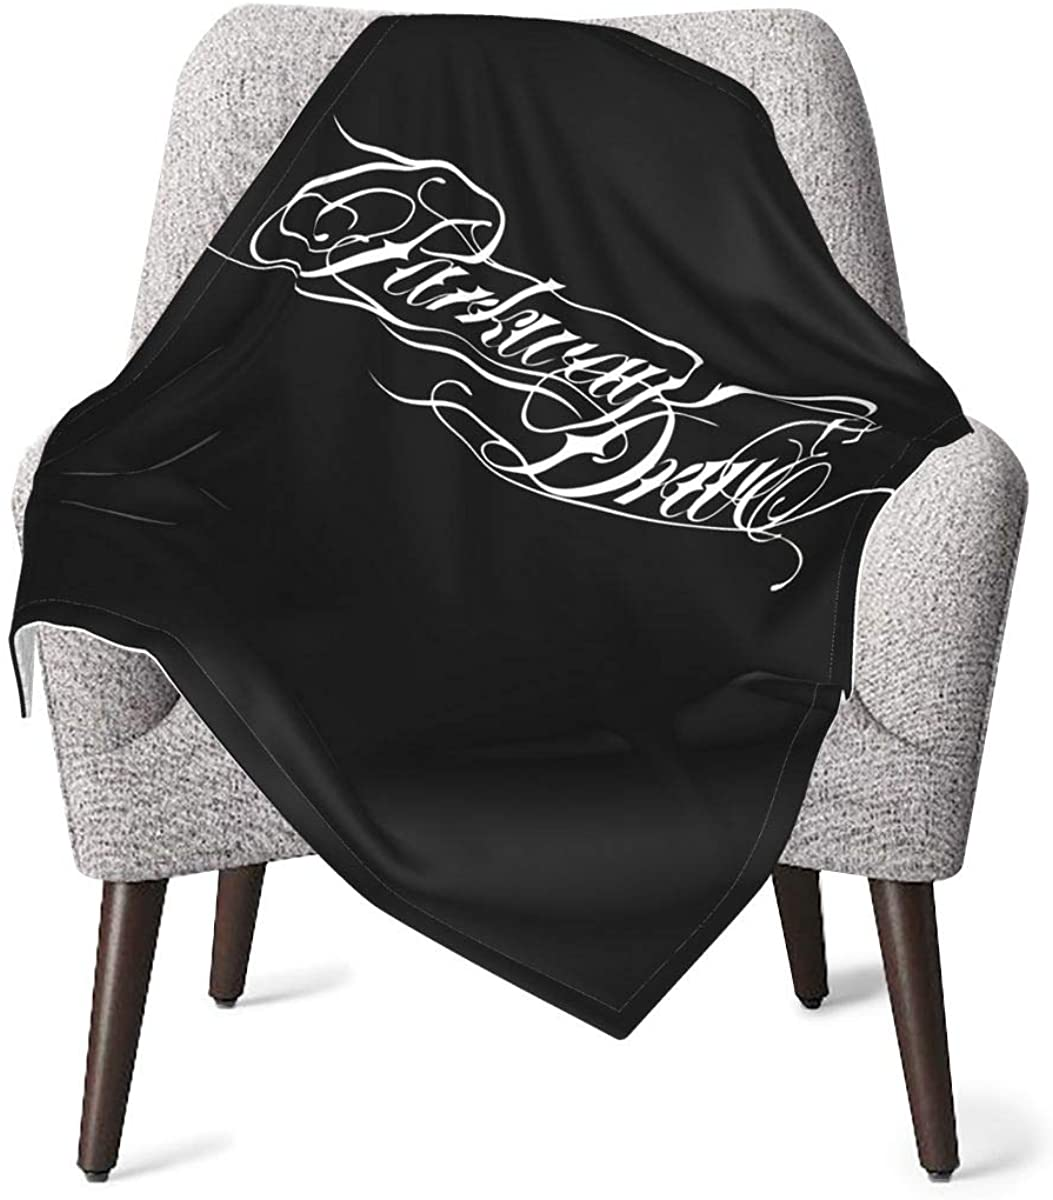 5husihai Parkway Drive Soft Baby Blanket for Baby Boy Or Girl Black